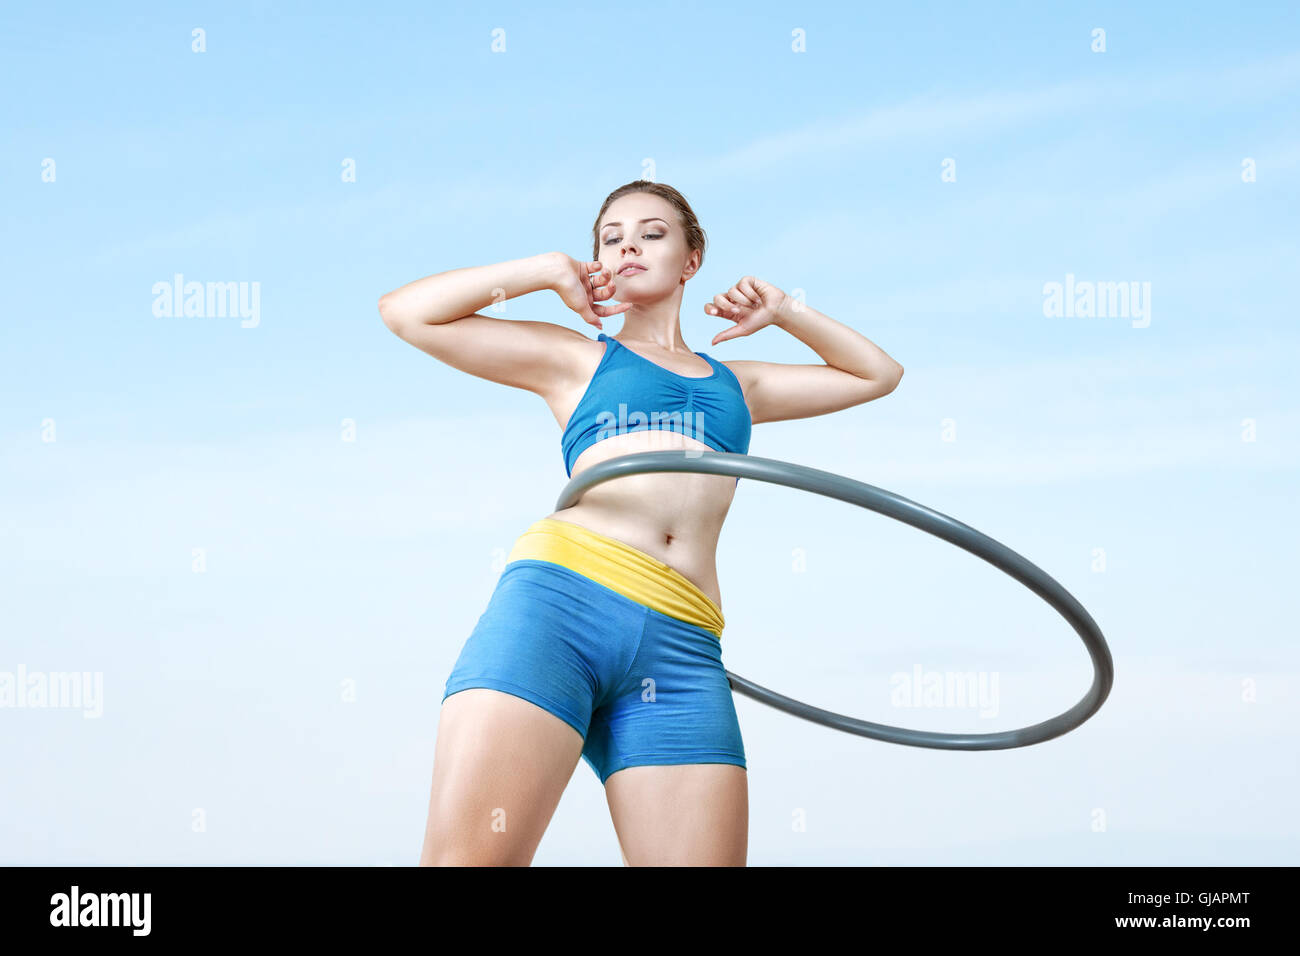 Young woman rotates hula hoop on nature background. Low angle view - Stock Image